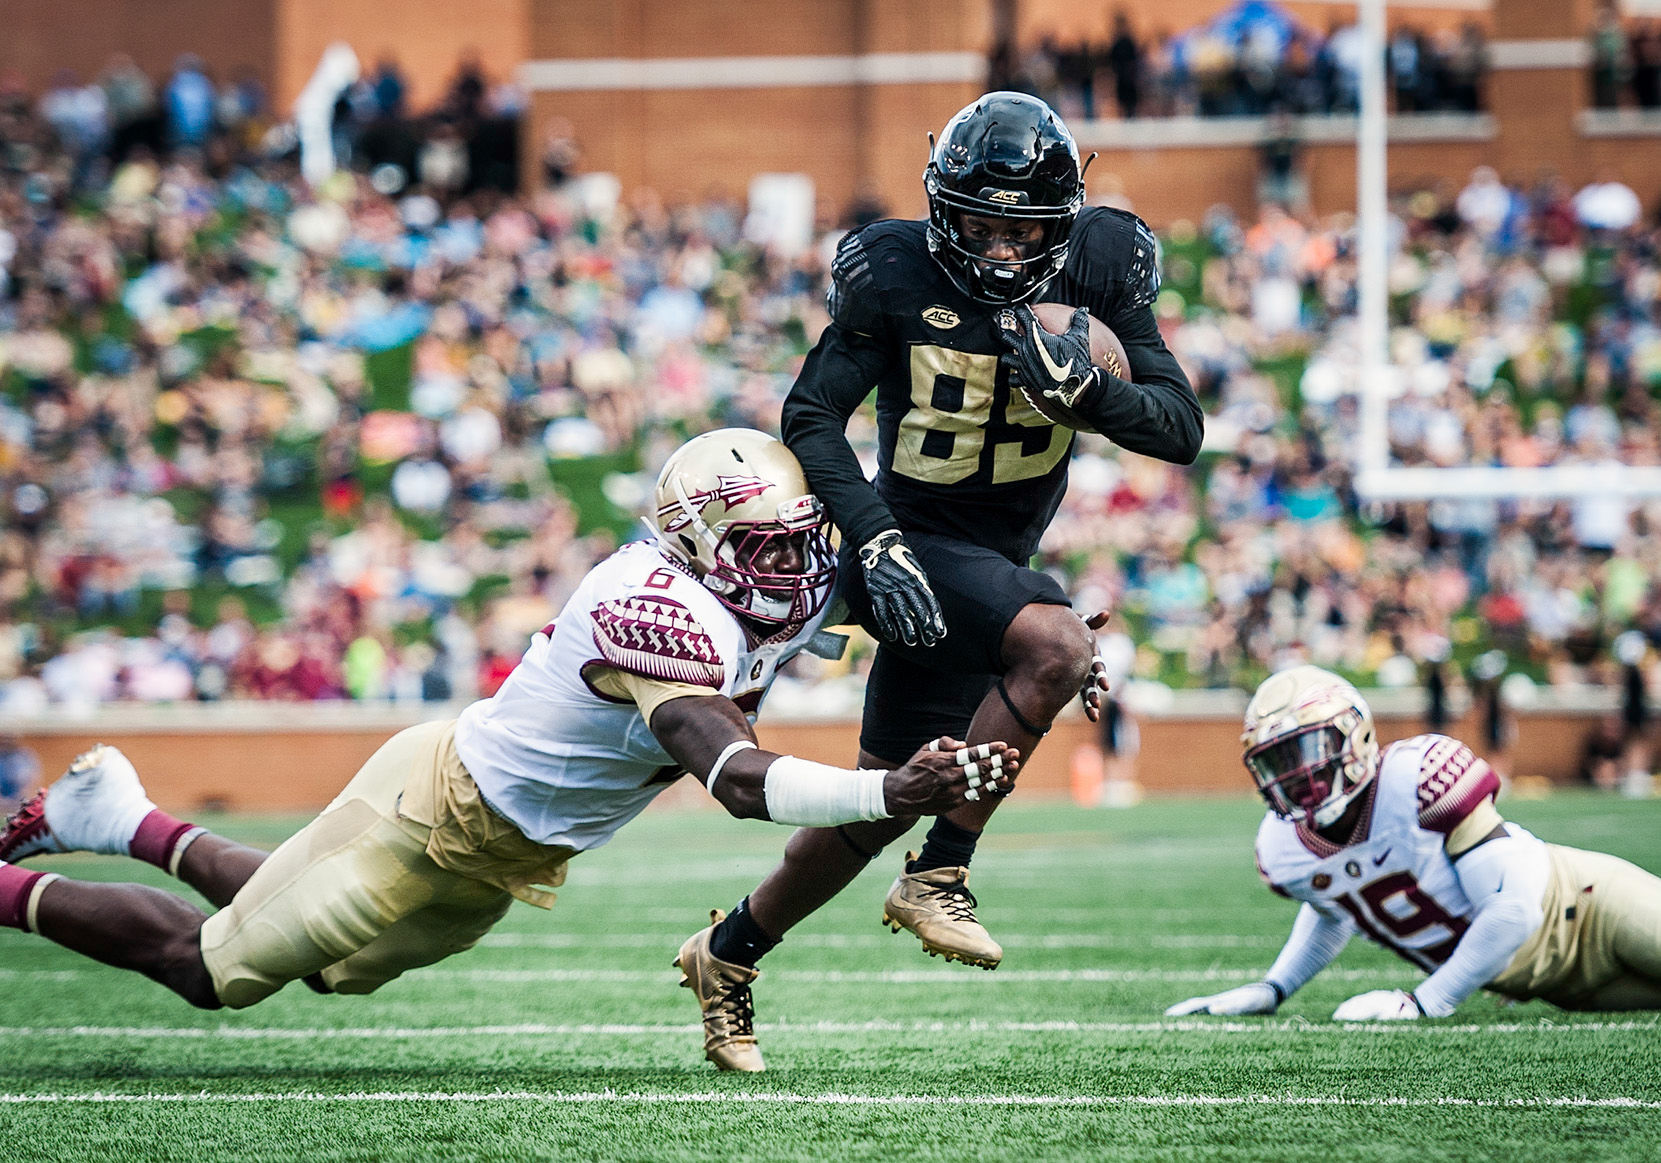 Florida State survives Wake Forest in 26-19 win